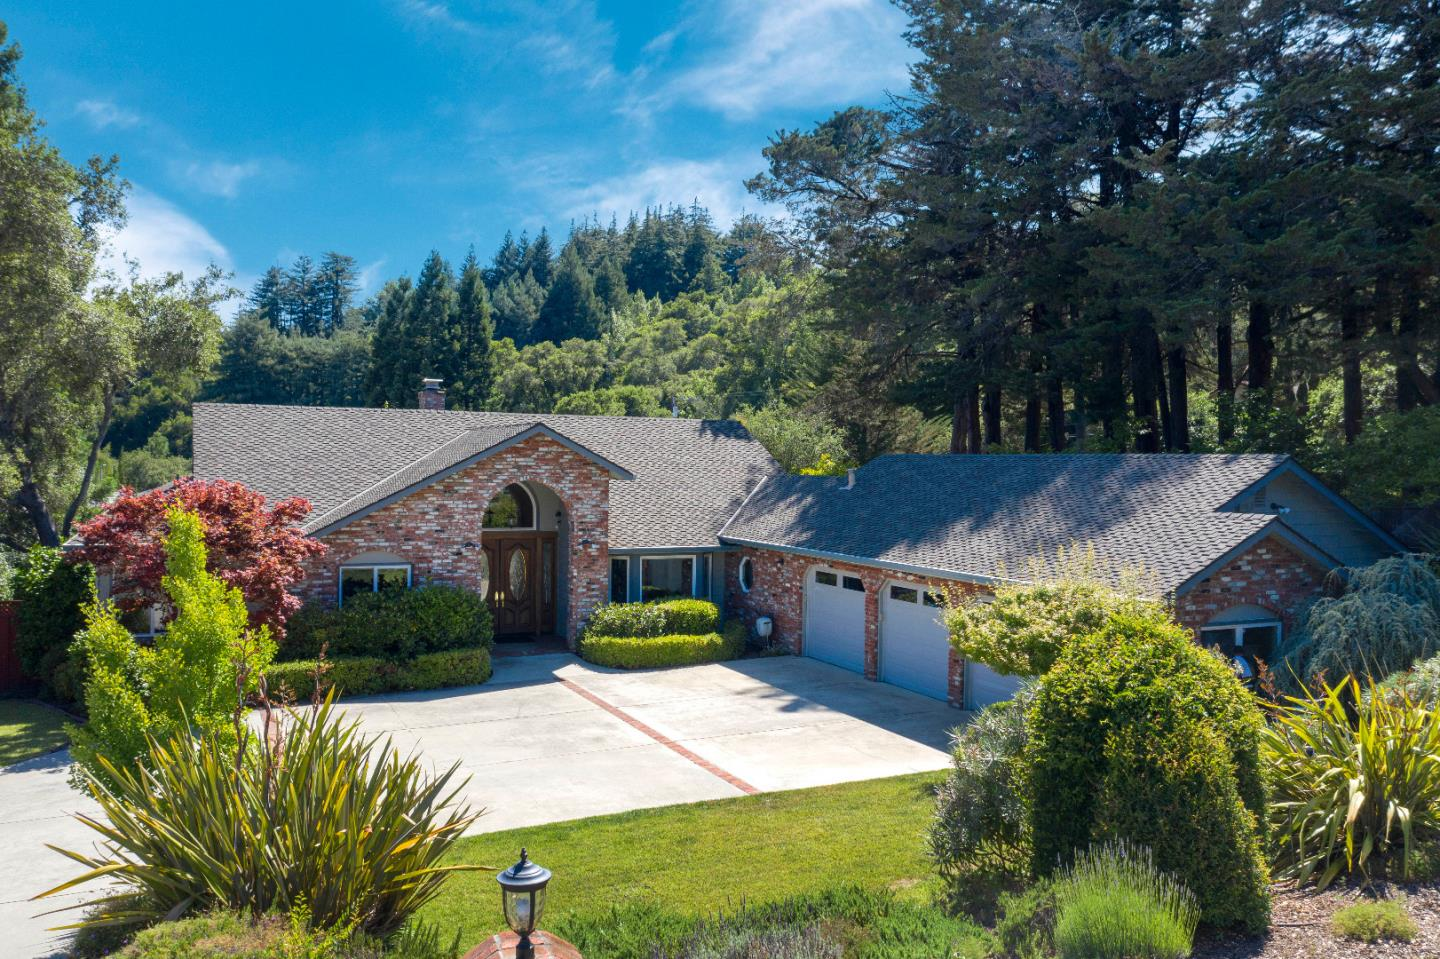 Superbly appointed single level 4 bedroom home in Granite Creek Estates.  This is an impressive property.  Indoor amenities include a Chef's kitchen, wine cellar, hardwood floors with custom inlay detailing, 3 fireplaces, high ceilings, a 3 car garage and abundant storage.  There is a fireplace in the living room, family room and master bedroom.  The floor plan is extremely well designed.  Outdoor amenities include a bocce ball court, custom luxurious fire pit, decks for entertaining, and manicured mature gardens . Easy commute access to Santa Cruz and Silicon Valley.  Top rated Scotts Valley Schools.